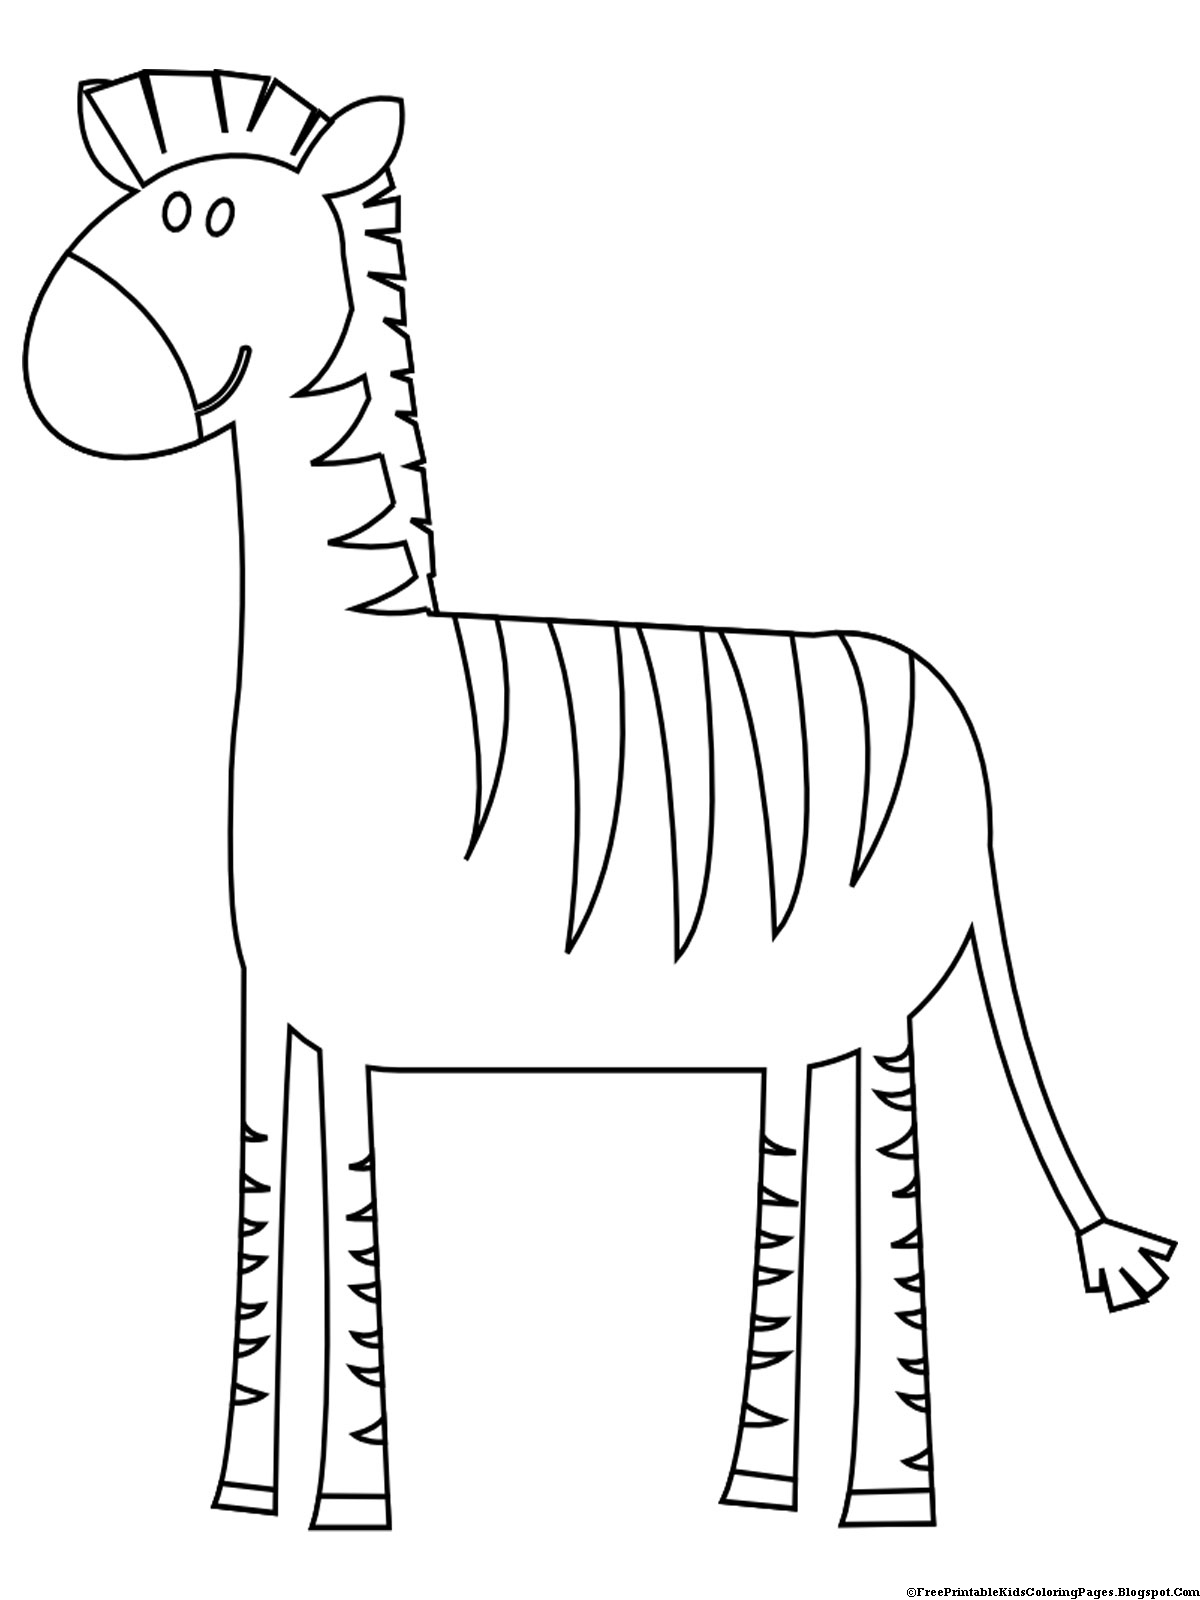 zebra colouring pages to print printable zebra preschool coloring page for kidsfree zebra print pages to colouring